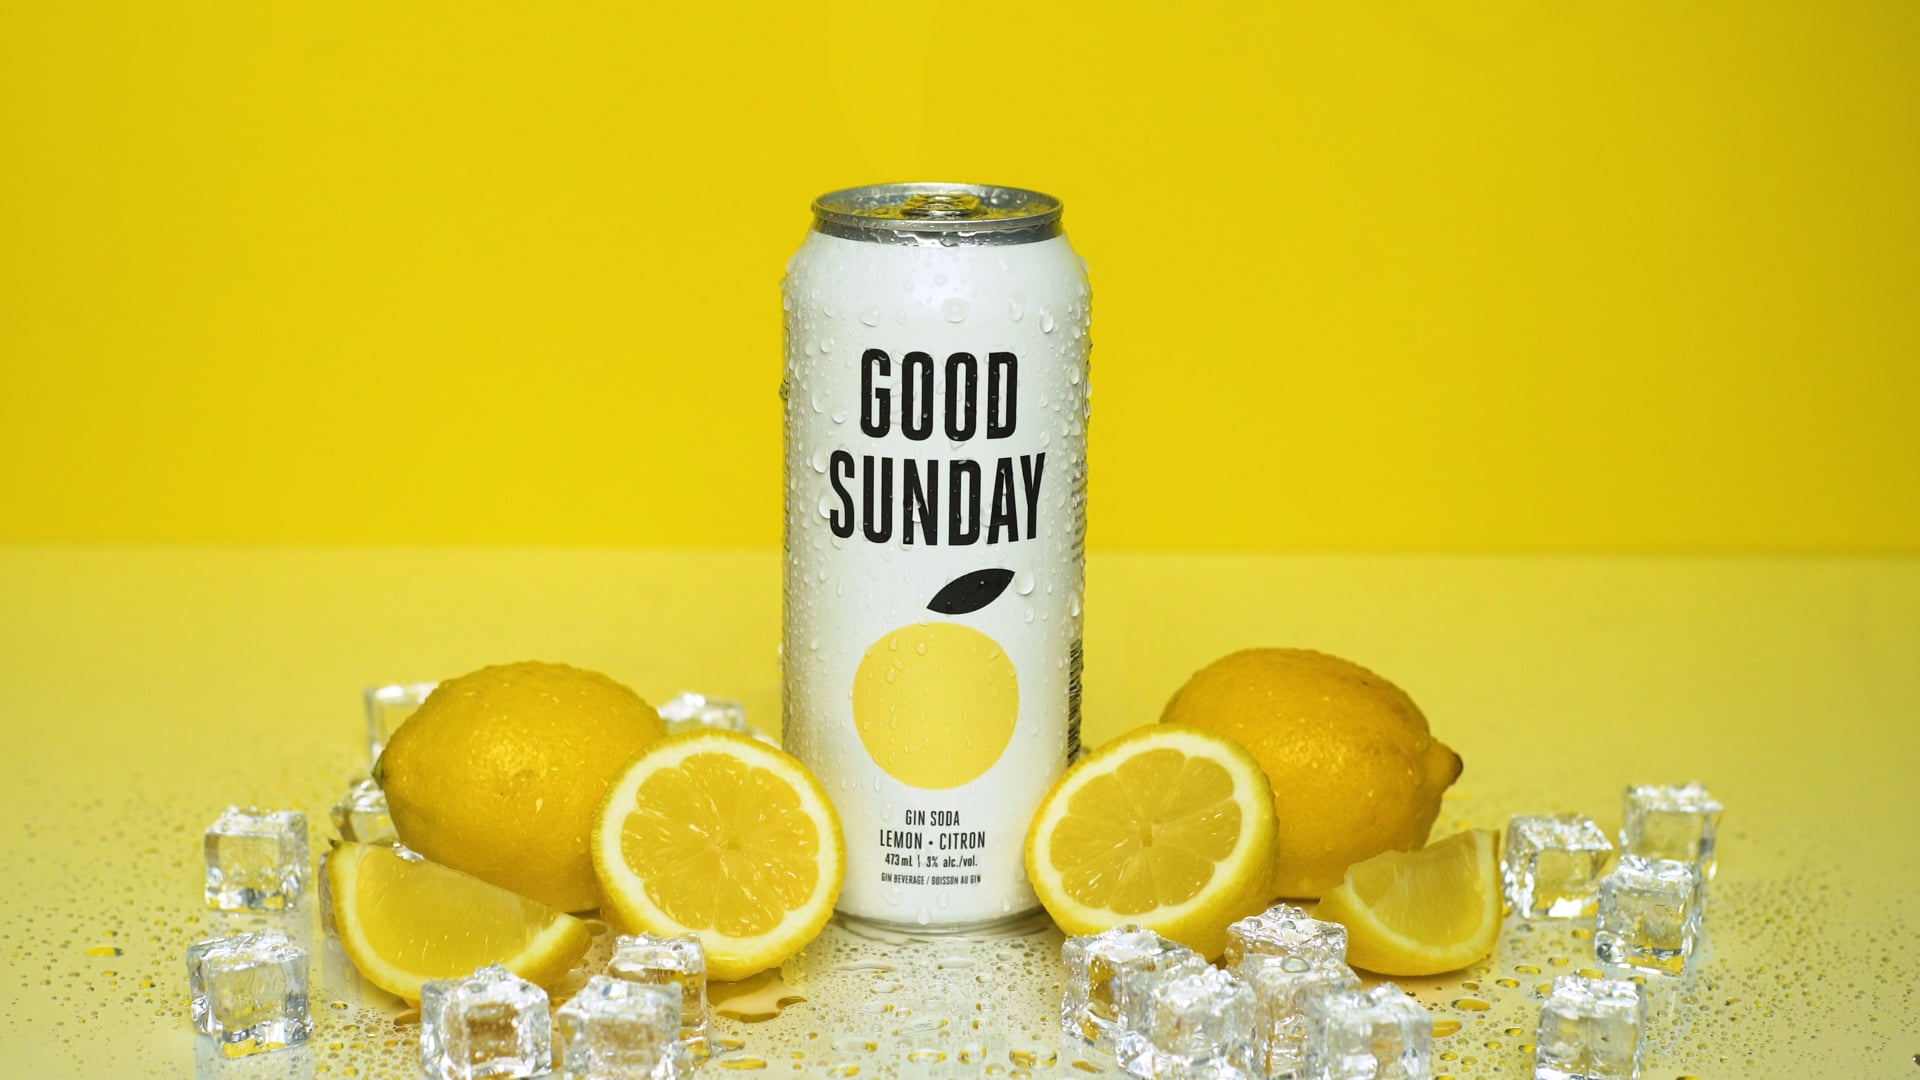 Good Sunday (Commercial)